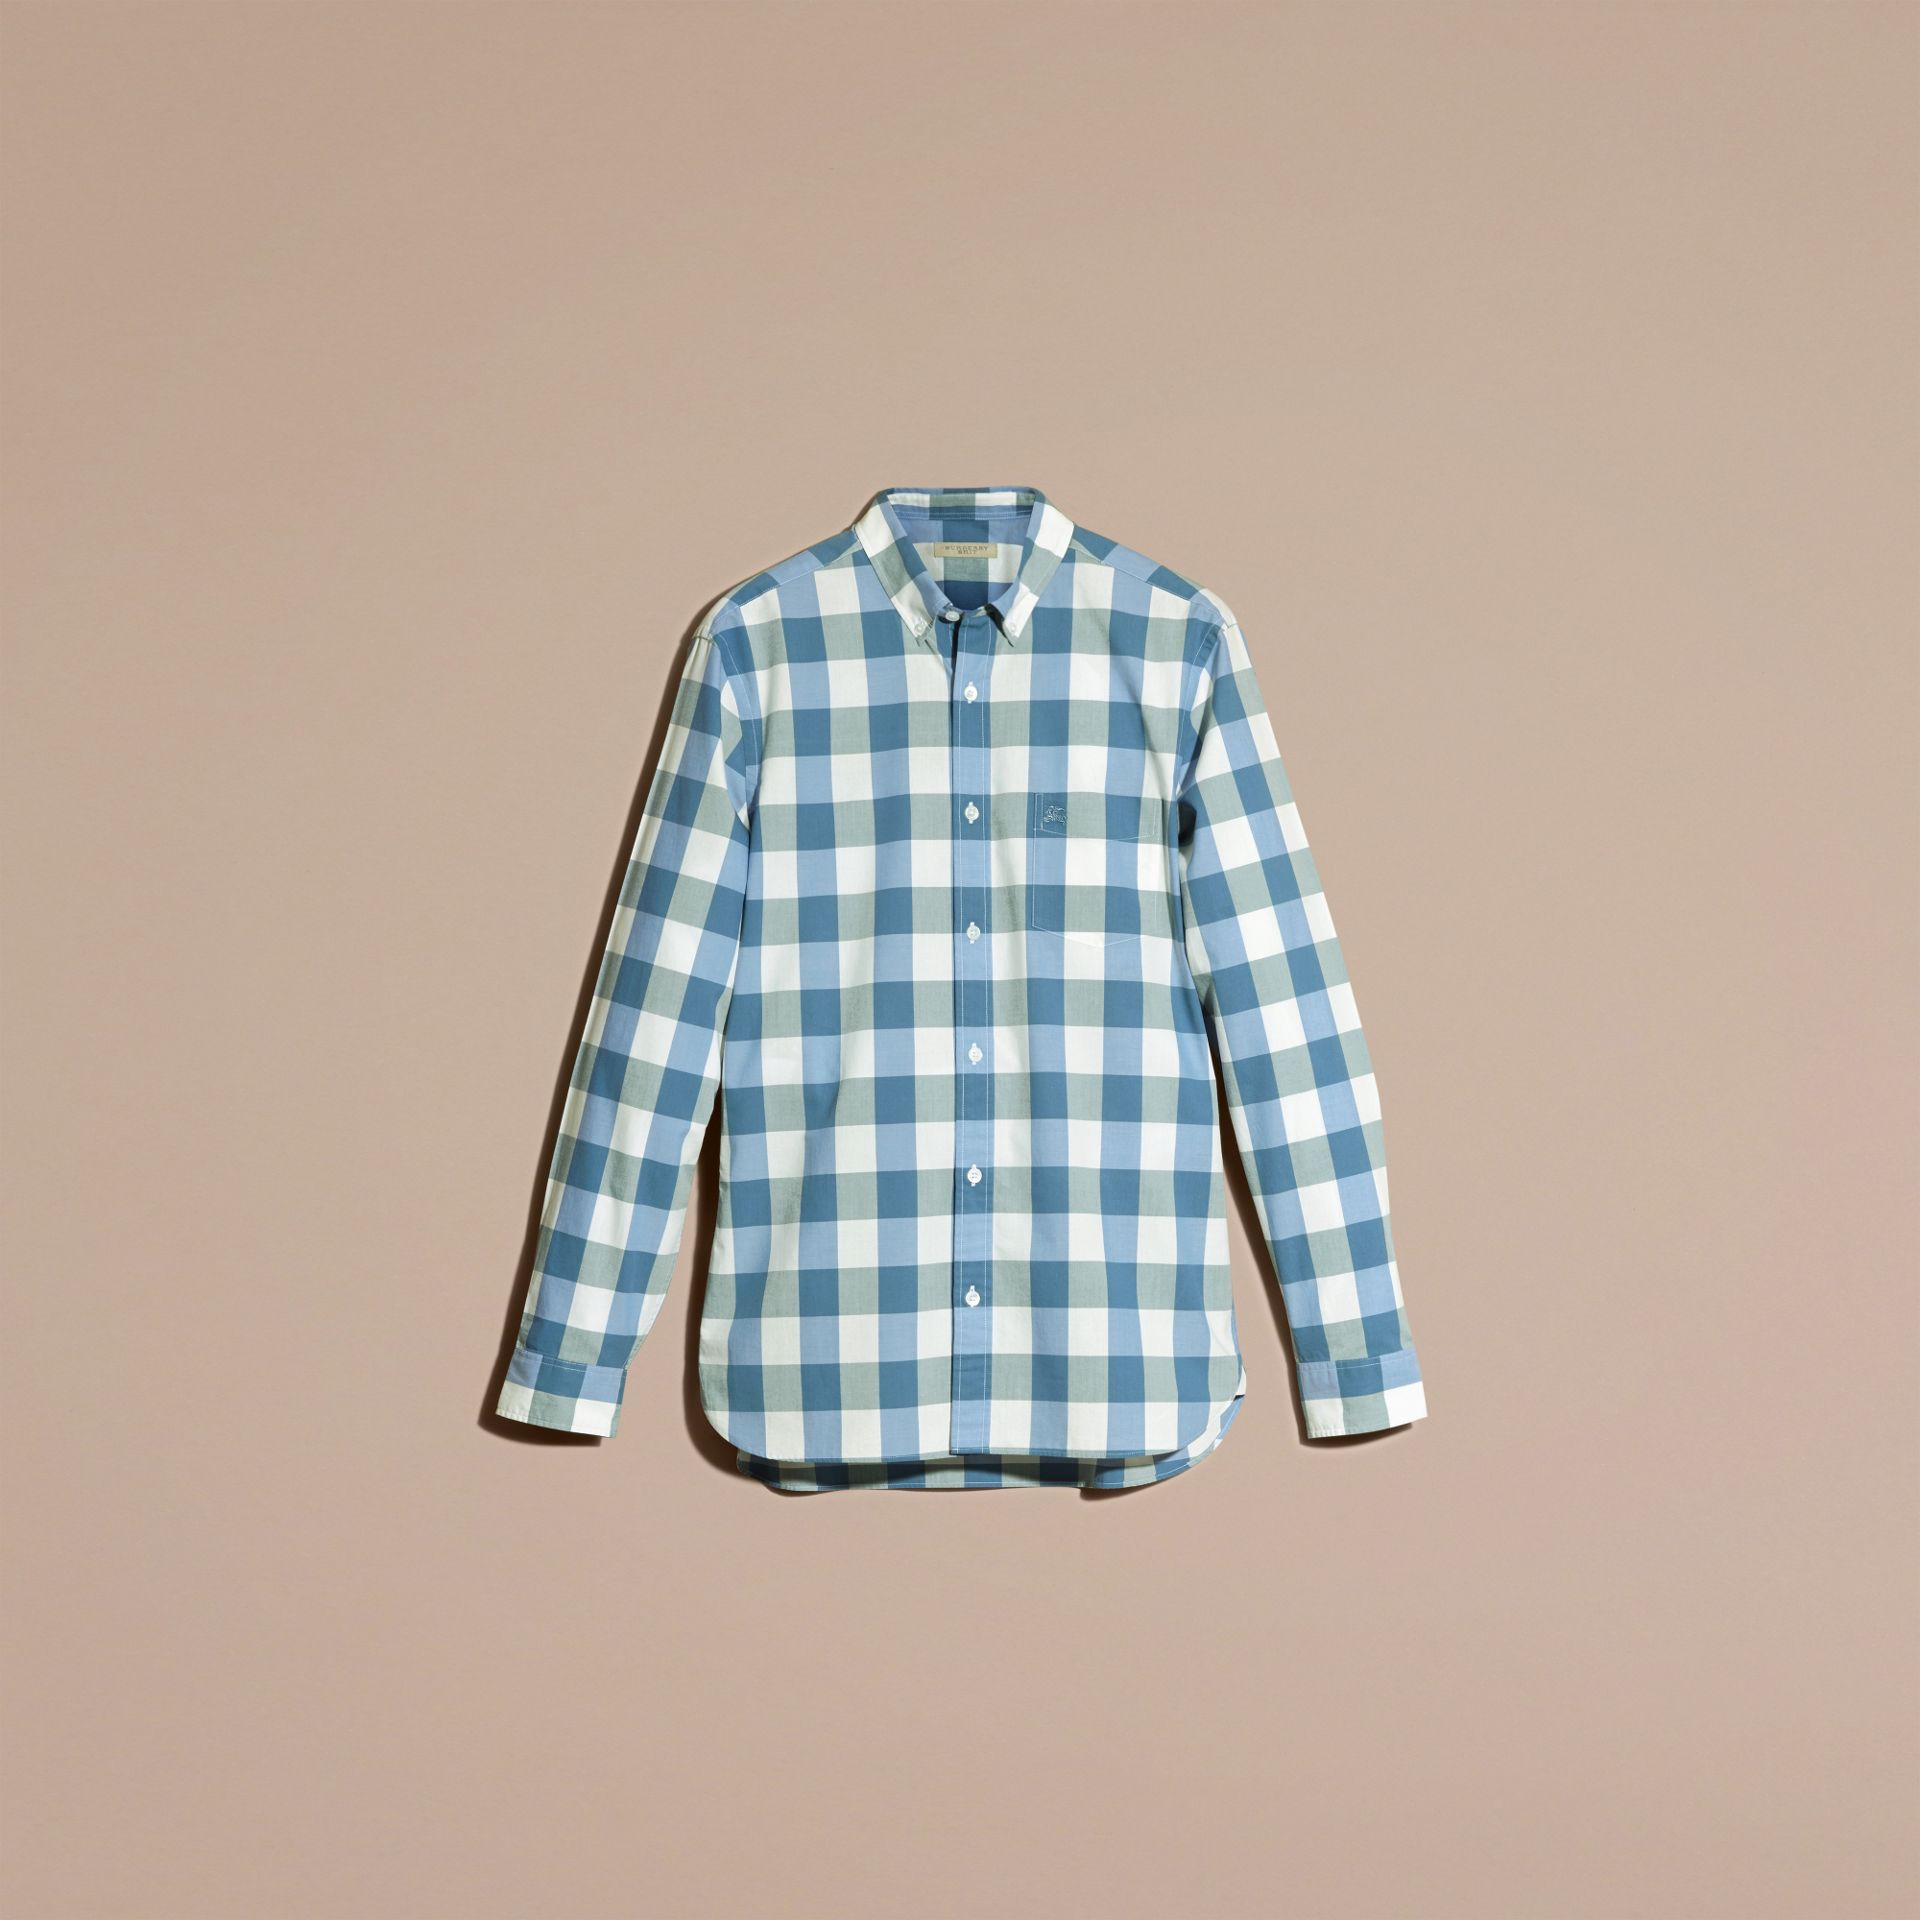 Bright hydrangea blue Button-down Collar Gingham Cotton Shirt Bright Hydrangea Blue - gallery image 4